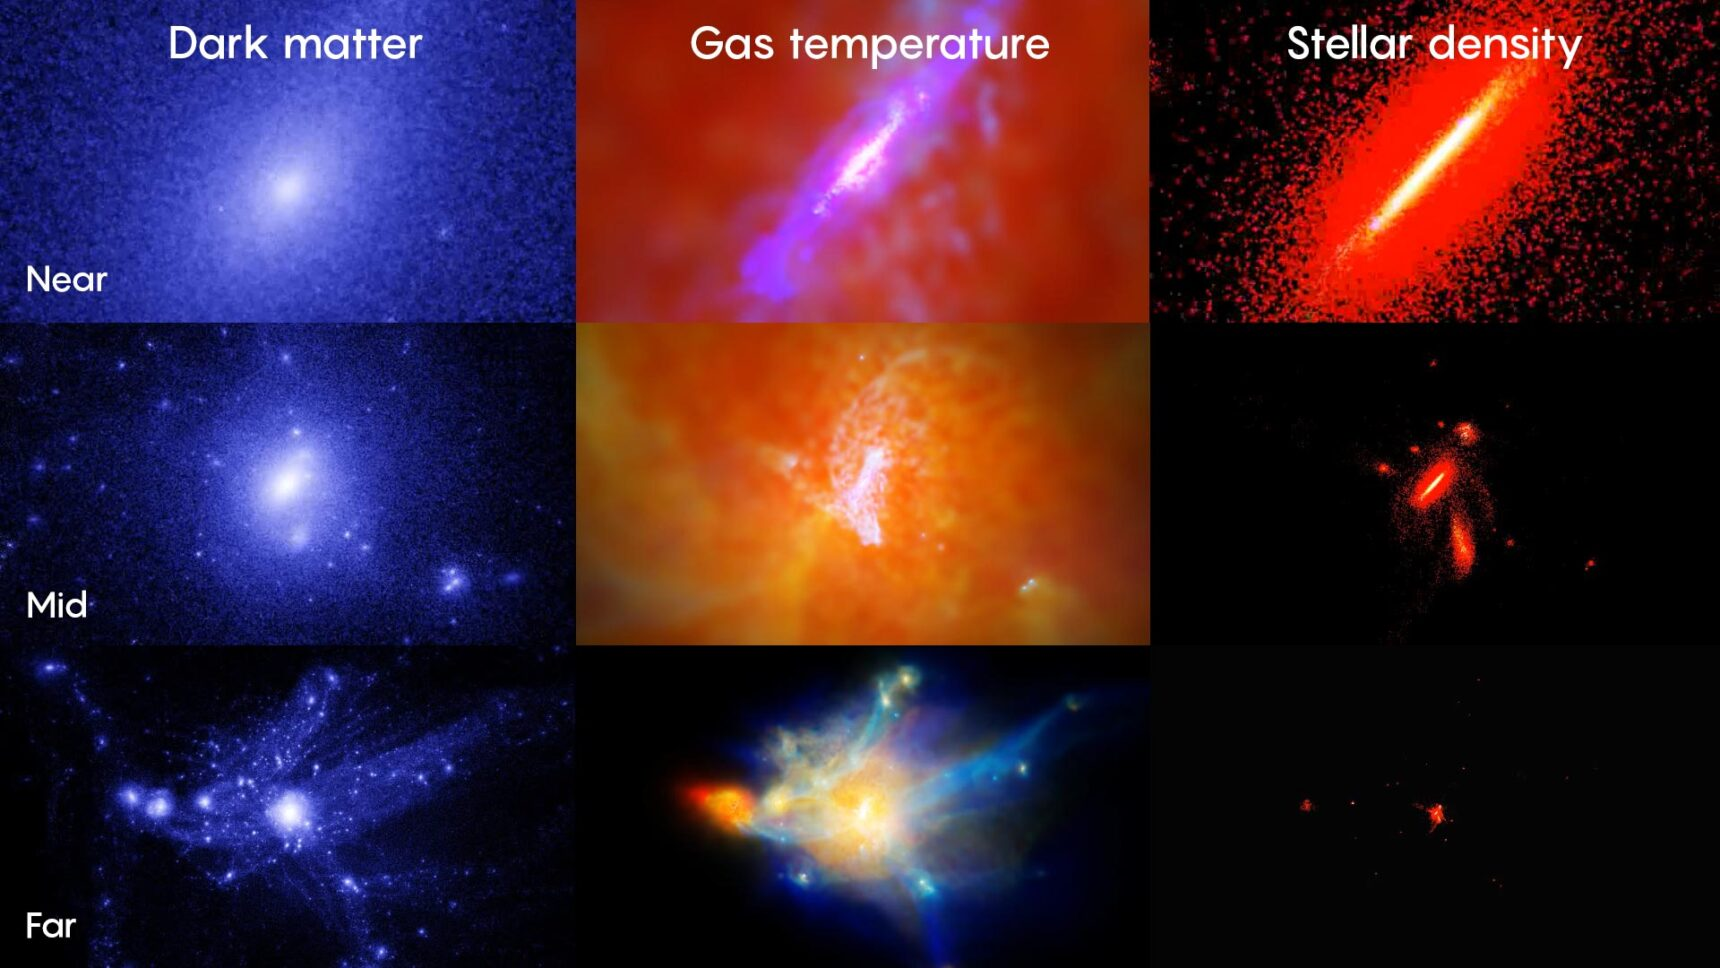 In these digital simulations, a Milky Way–like galaxy forms and evolves over 13.8 billion years — from the early universe to the present day. The leftmost column shows the distribution of invisible dark matter; the center column the temperature of gas (where blue is cold and red is hot); and the right column the density of stars. Each row highlights a different size scale: The top row is a zoomed-in look at the galactic disk; the center column a mid-range view of the galactic halo; and the bottom row a zoomed-out view of the environment around the galaxy.